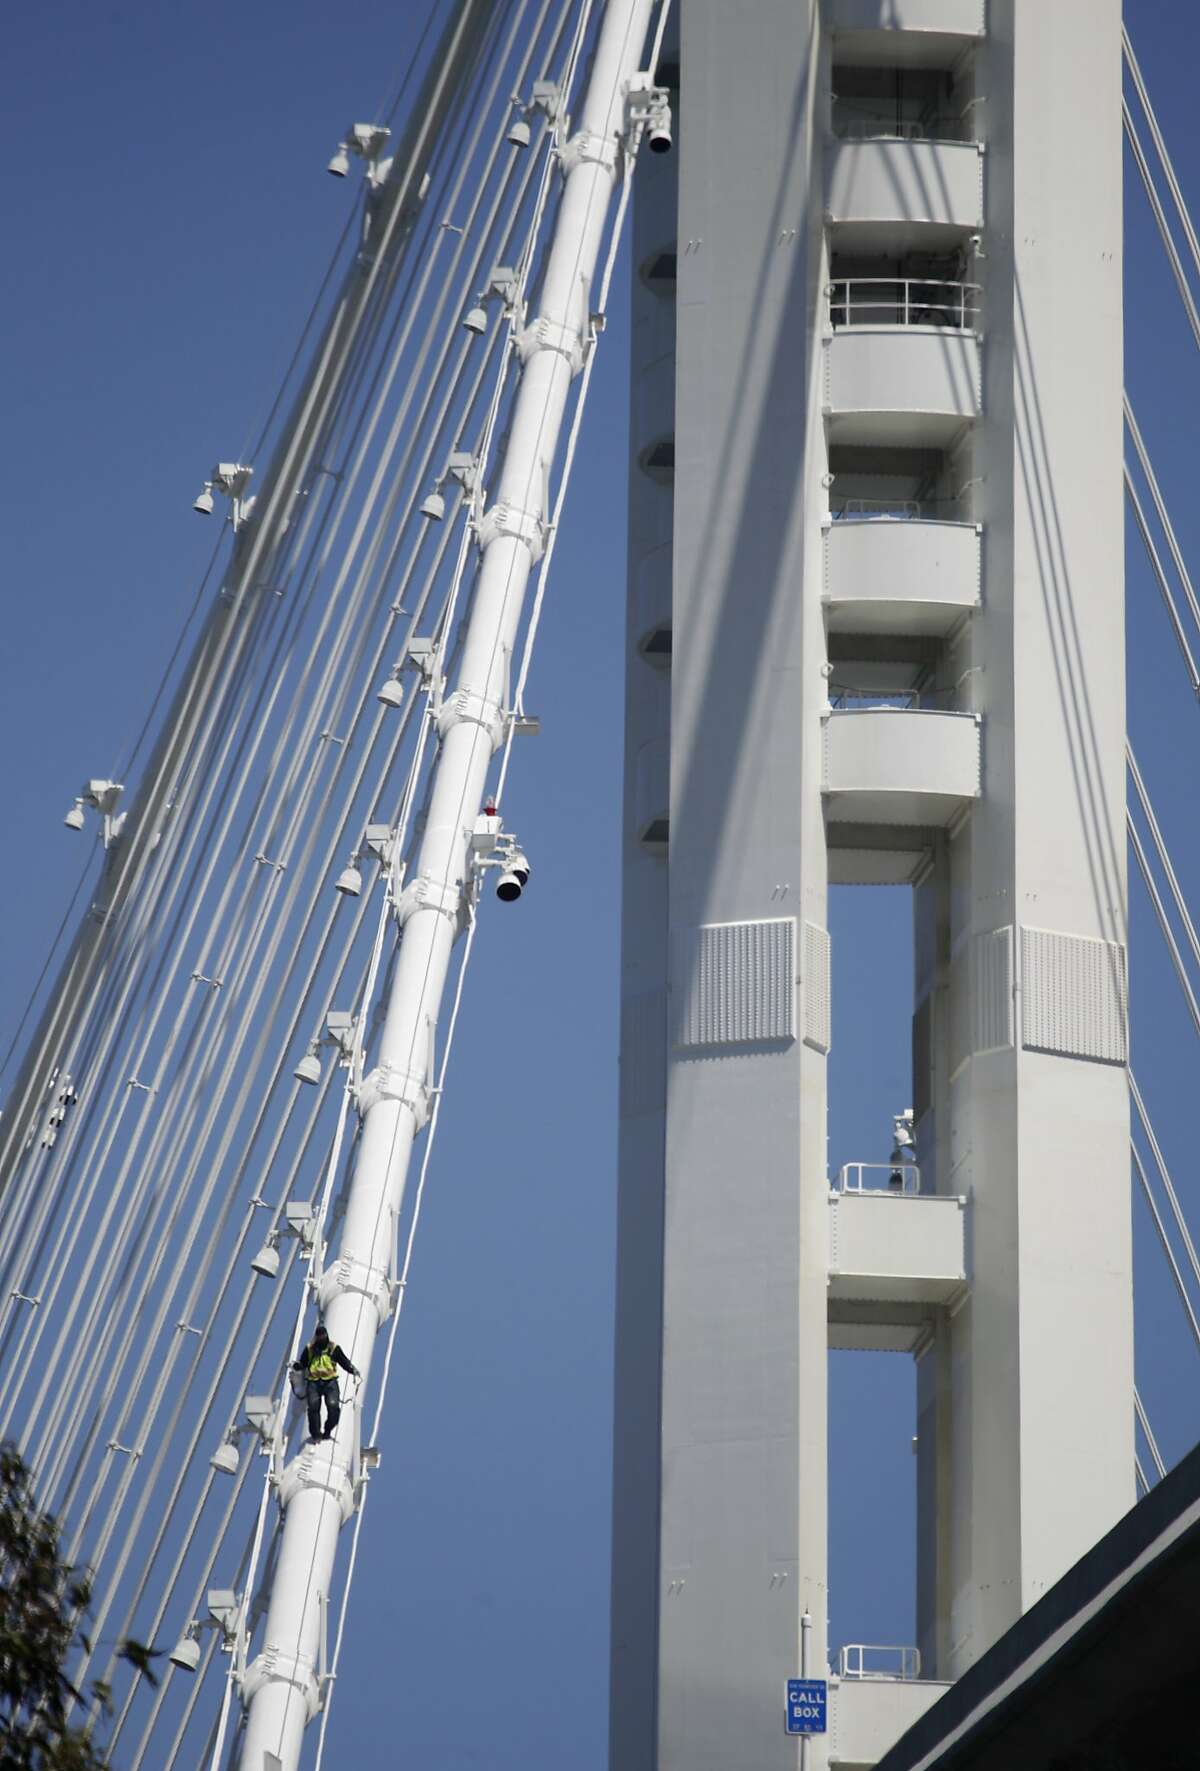 A construction worker climbs down on the main cable of the new Bay Bridge while sections of the temporary bike path are constructed in San Francisco, Calif. on Thursday, Aug. 22, 2013. Caltrans will shut down the Bay Bridge for five days over the Labor Day weekend to connect the new eastern span to the East Bay and Yerba Buena Island.